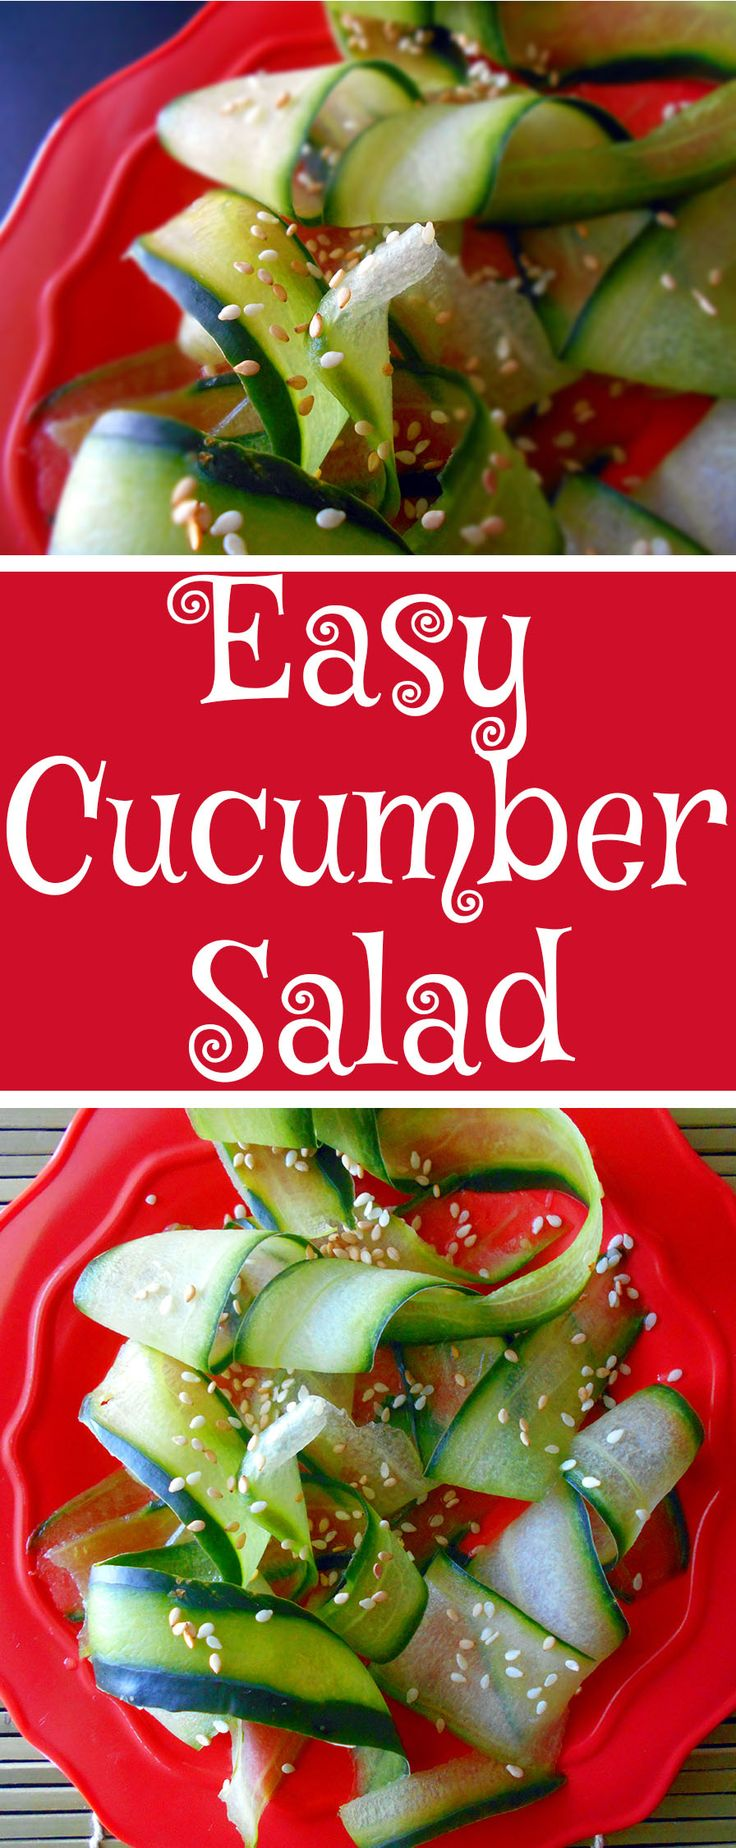 Cucumber salad is a healthy salad recipe made Japanese style. The recipe takes traditional Japanese ingredients and blends them into a simple salad with cucumbers.  This quick salad recipe is a great side dish.